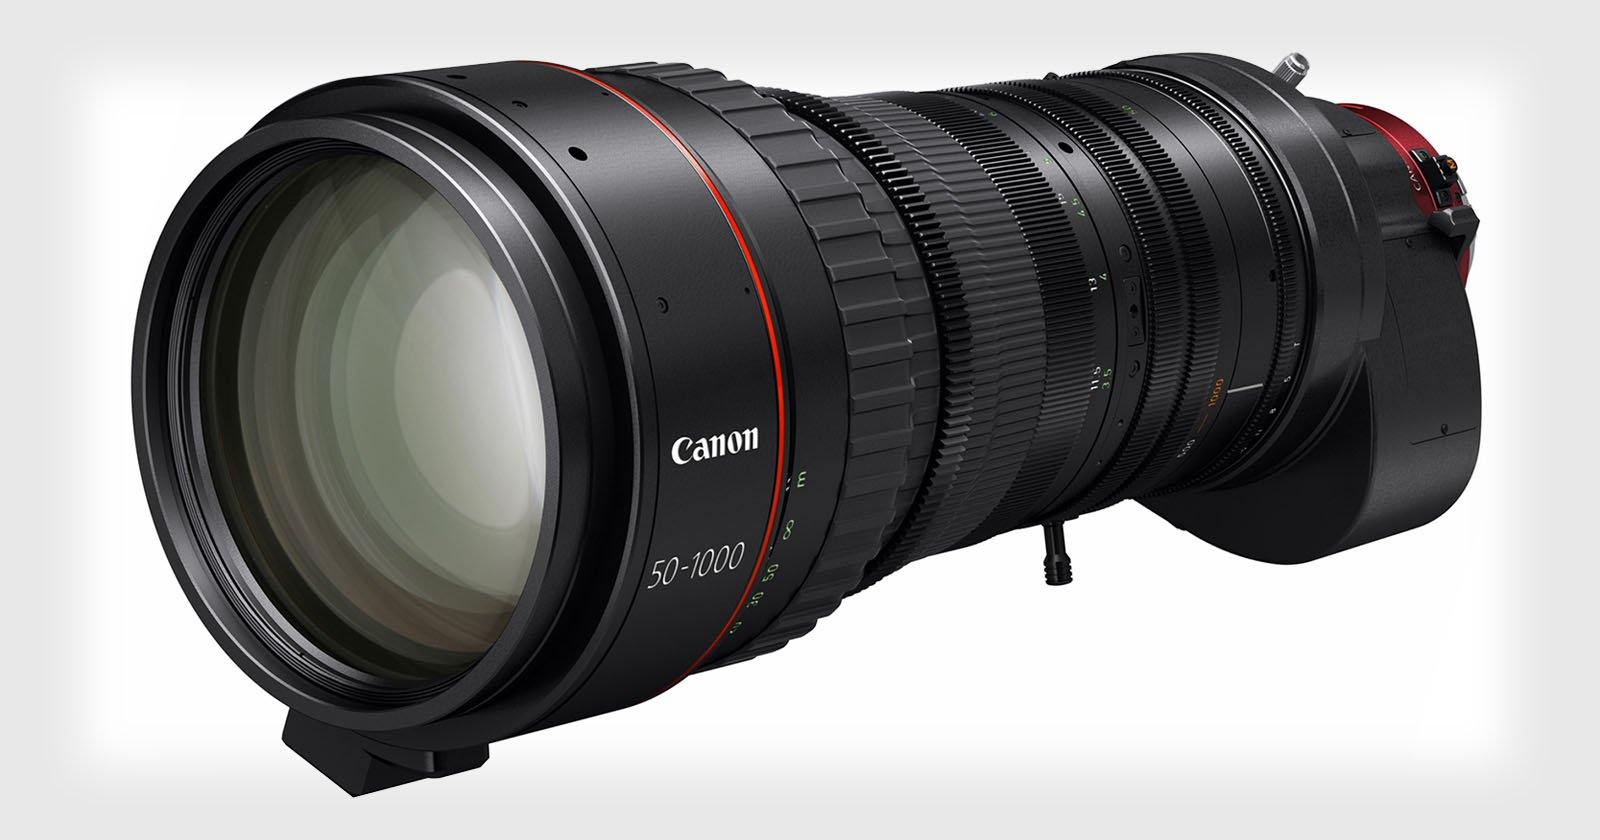 Canon Said 'Challenge Accepted,' and This $70K 50-1000mm Lens Was Born